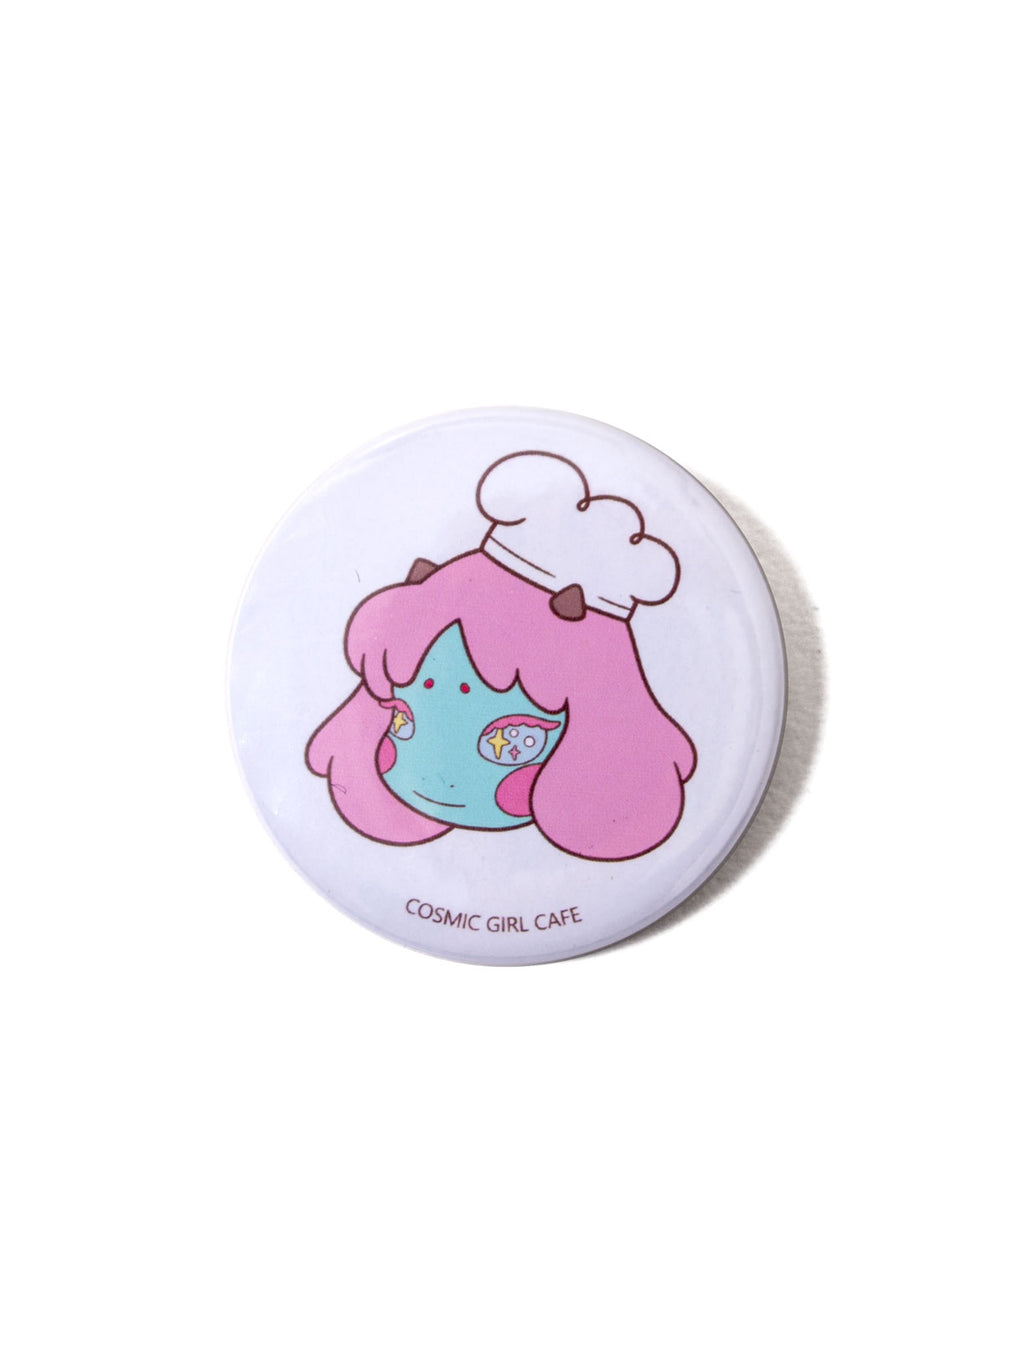 cosmic girl can badge